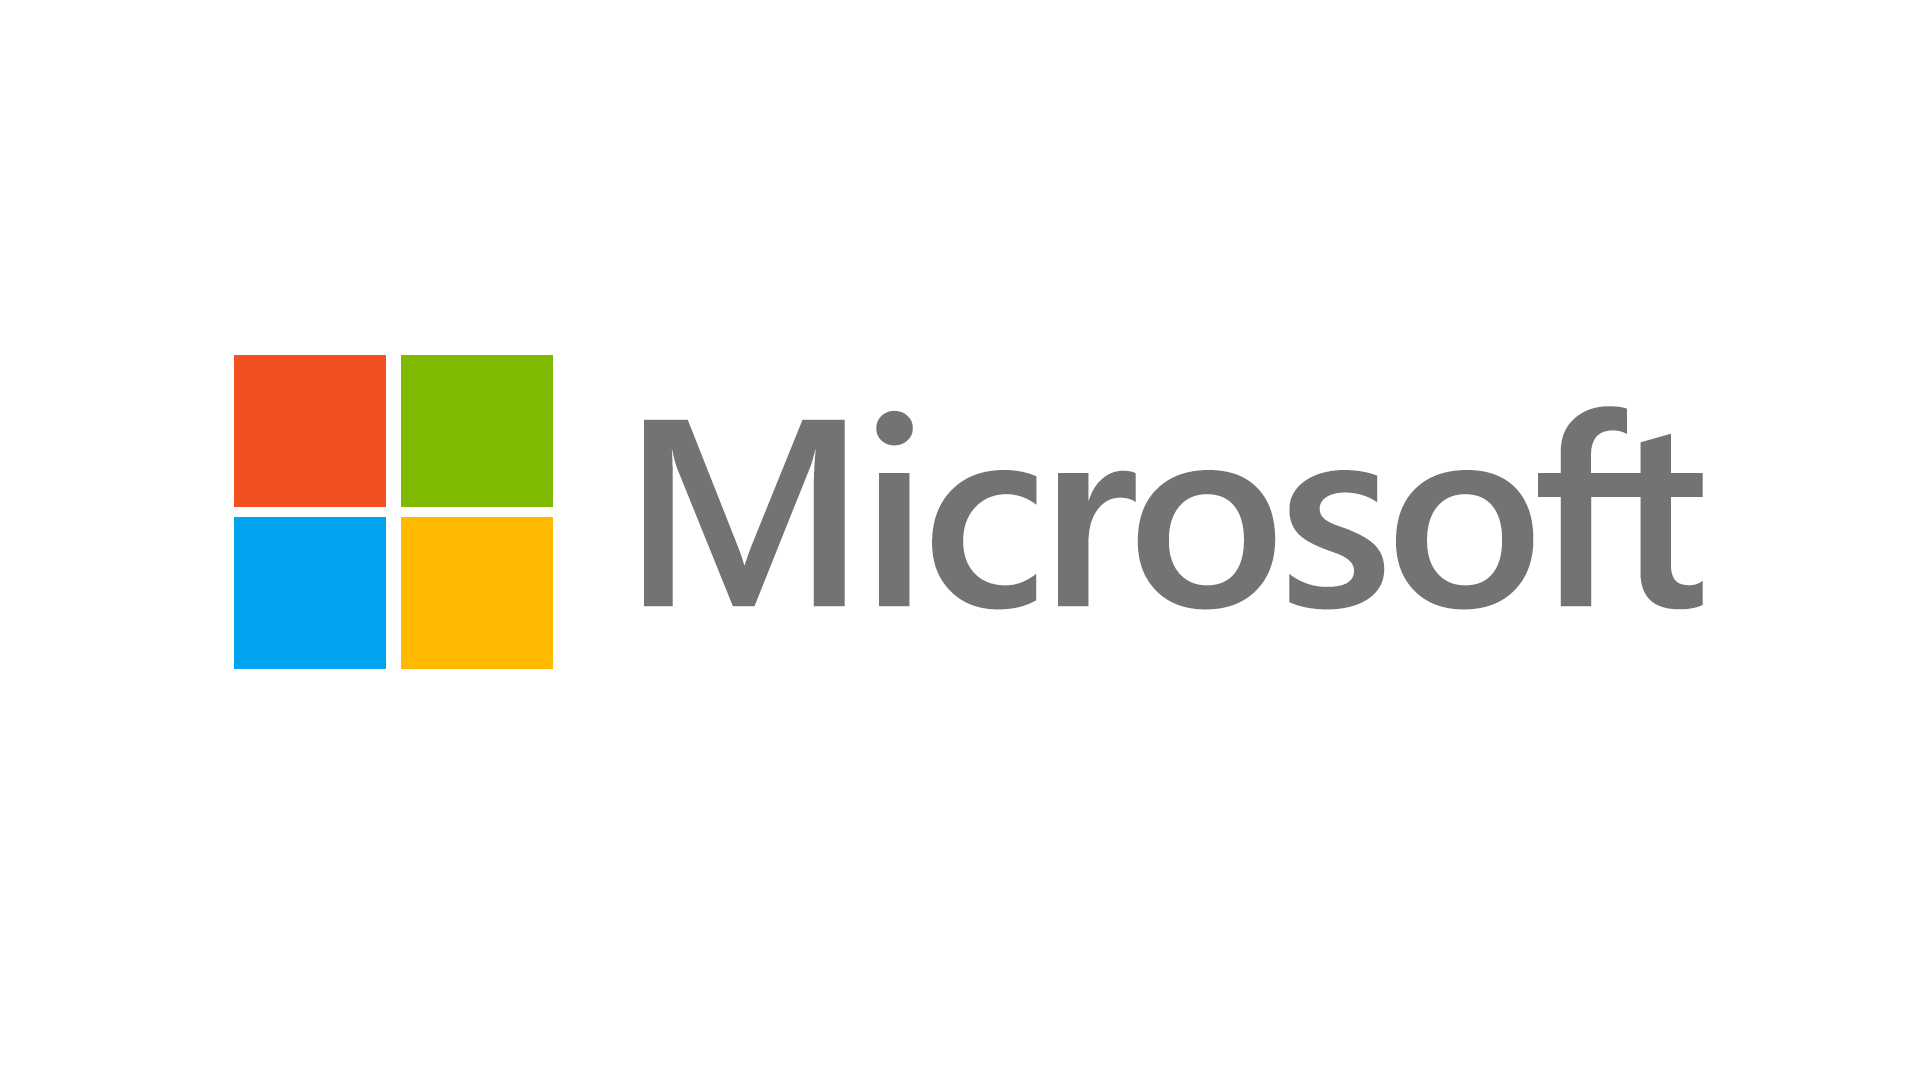 Microsoft announces new startup program, to invest $500M over the next two years 1